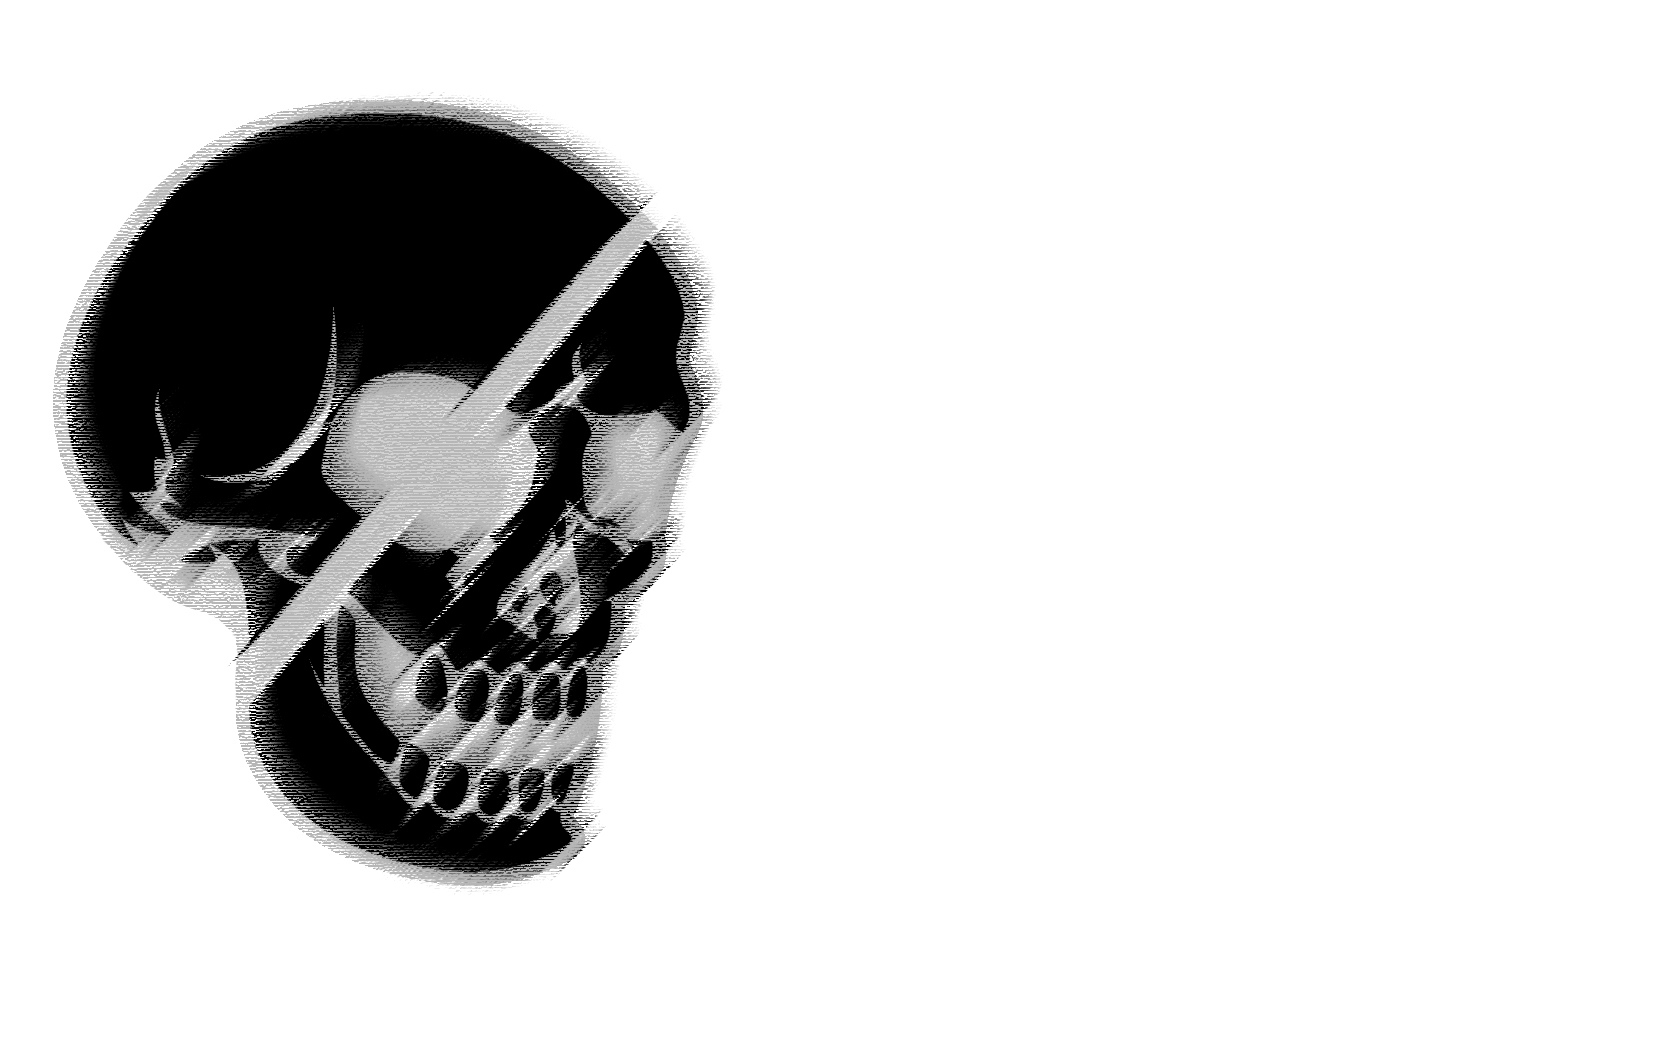 Drawn ssckull white background Drawing skull Download White 1680x1050